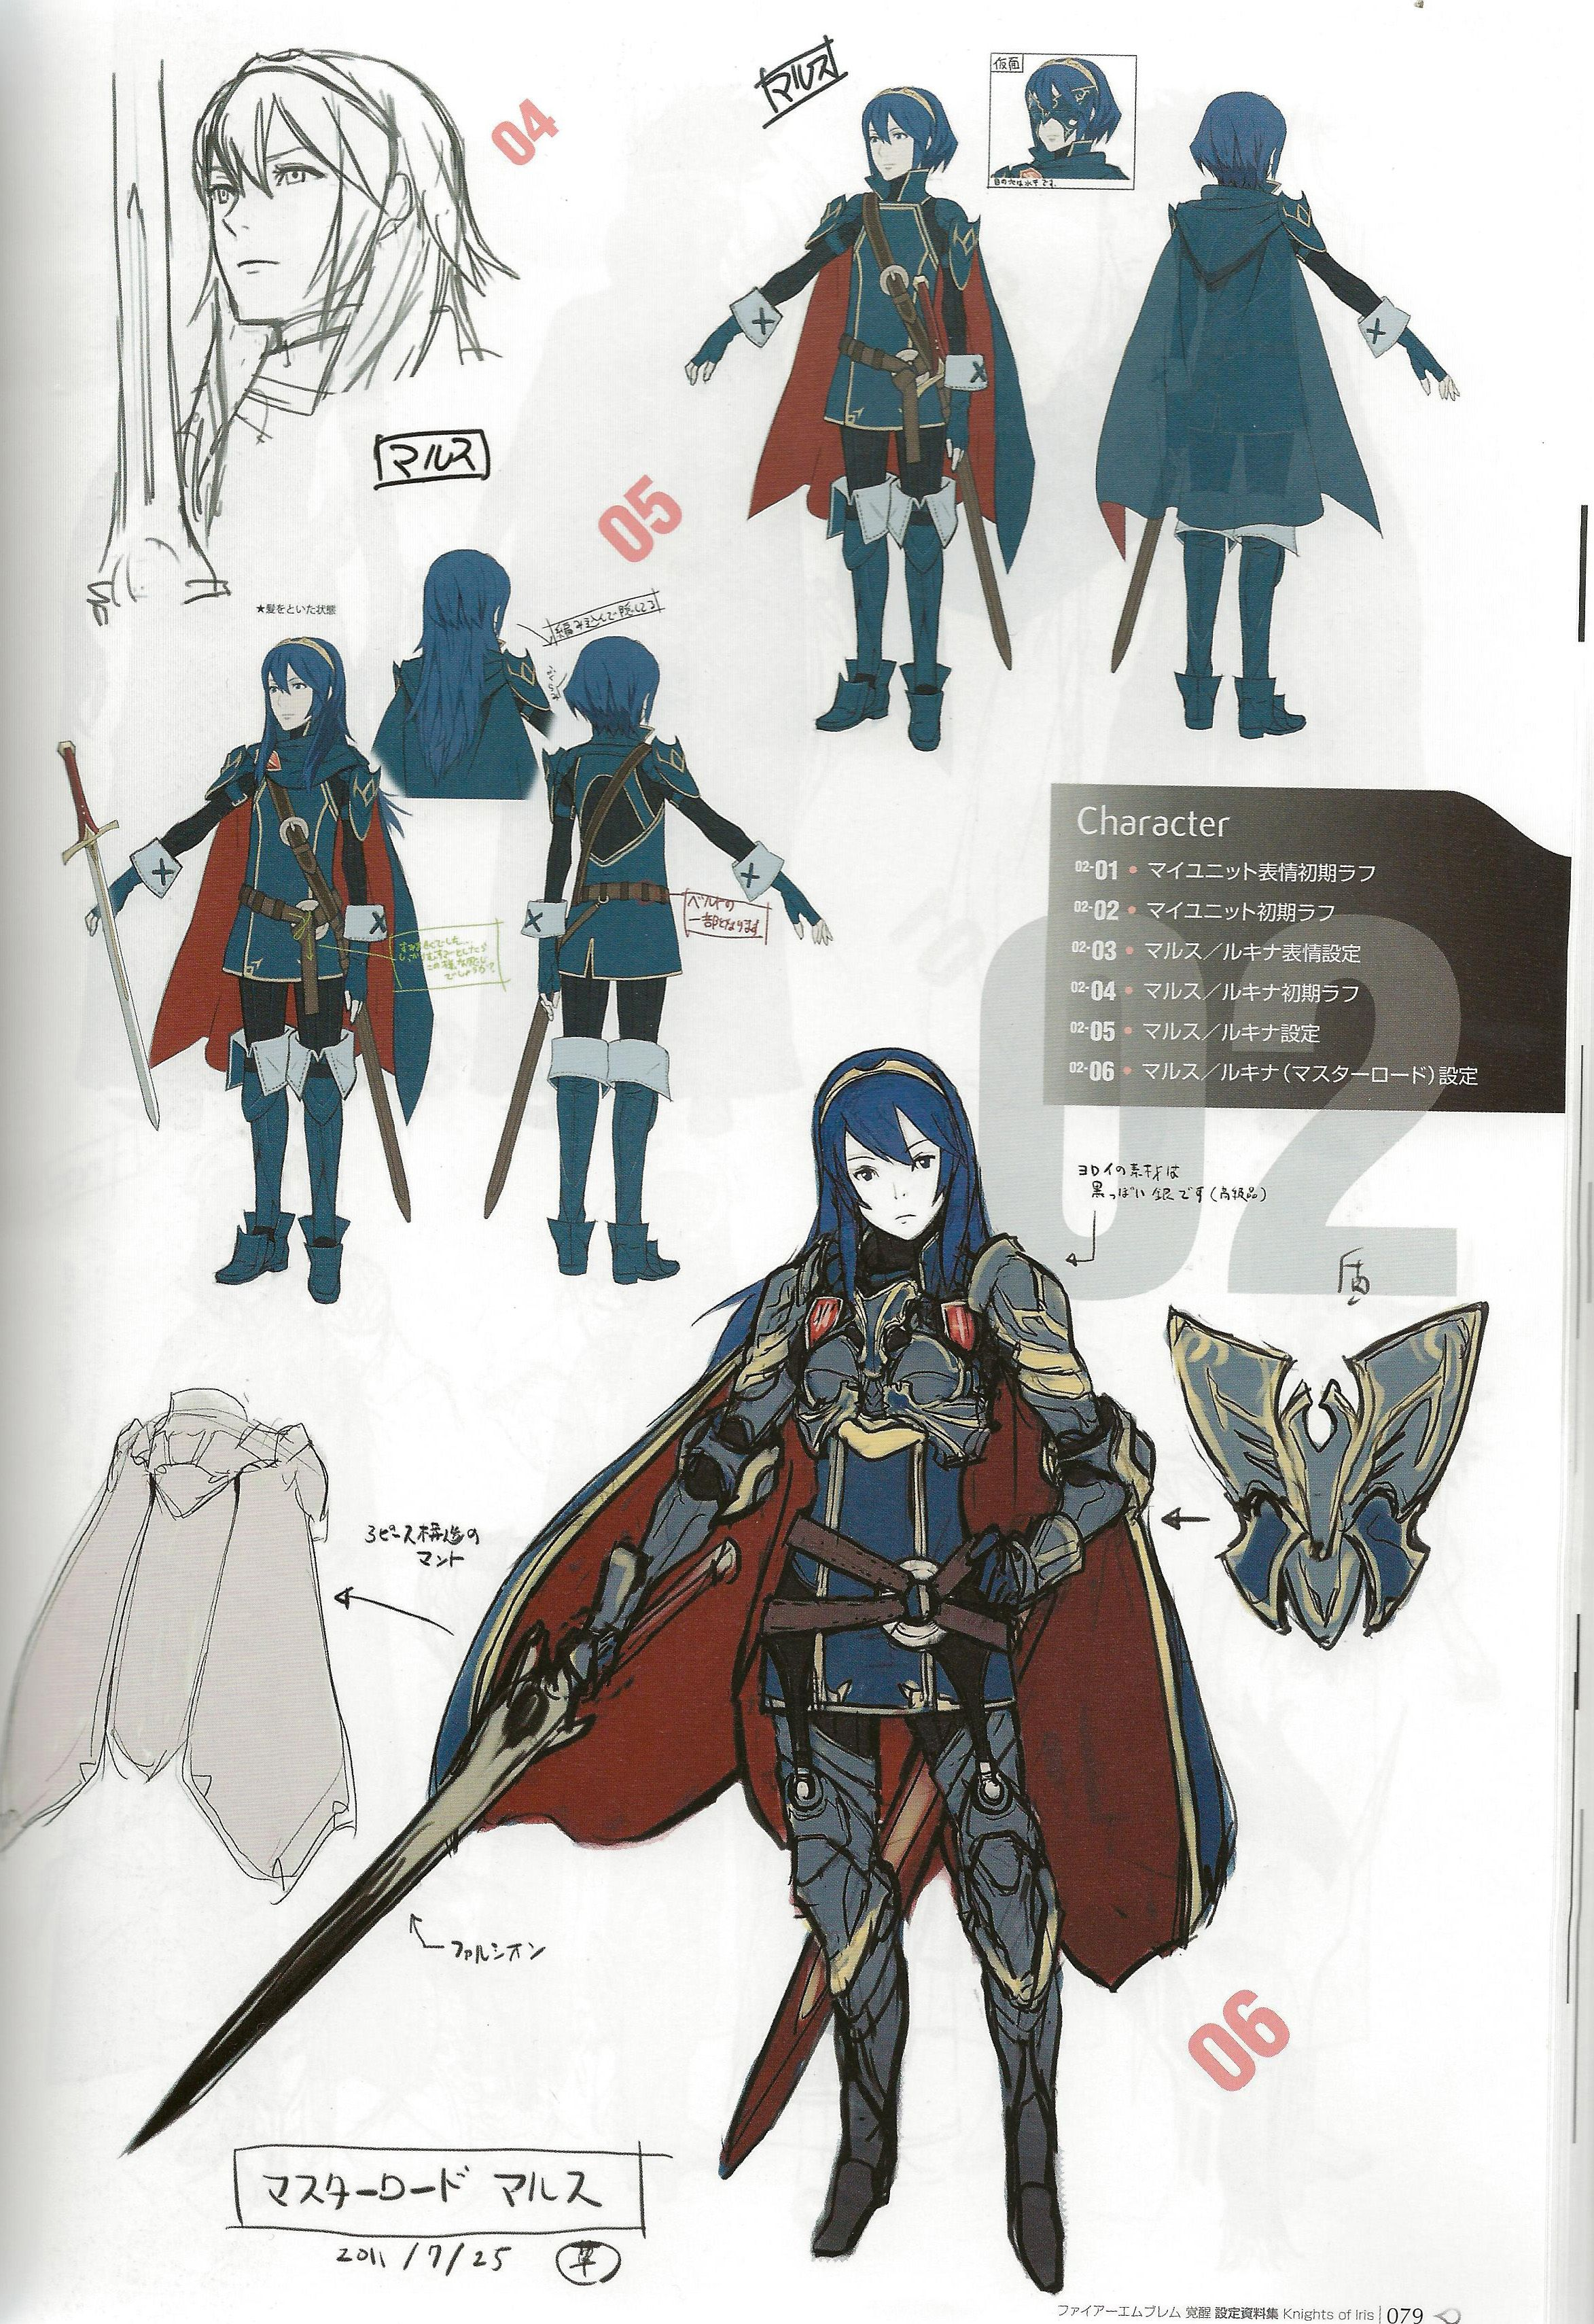 Fire Emblem: Awakening - Concept Art | Armor/Clothing ...